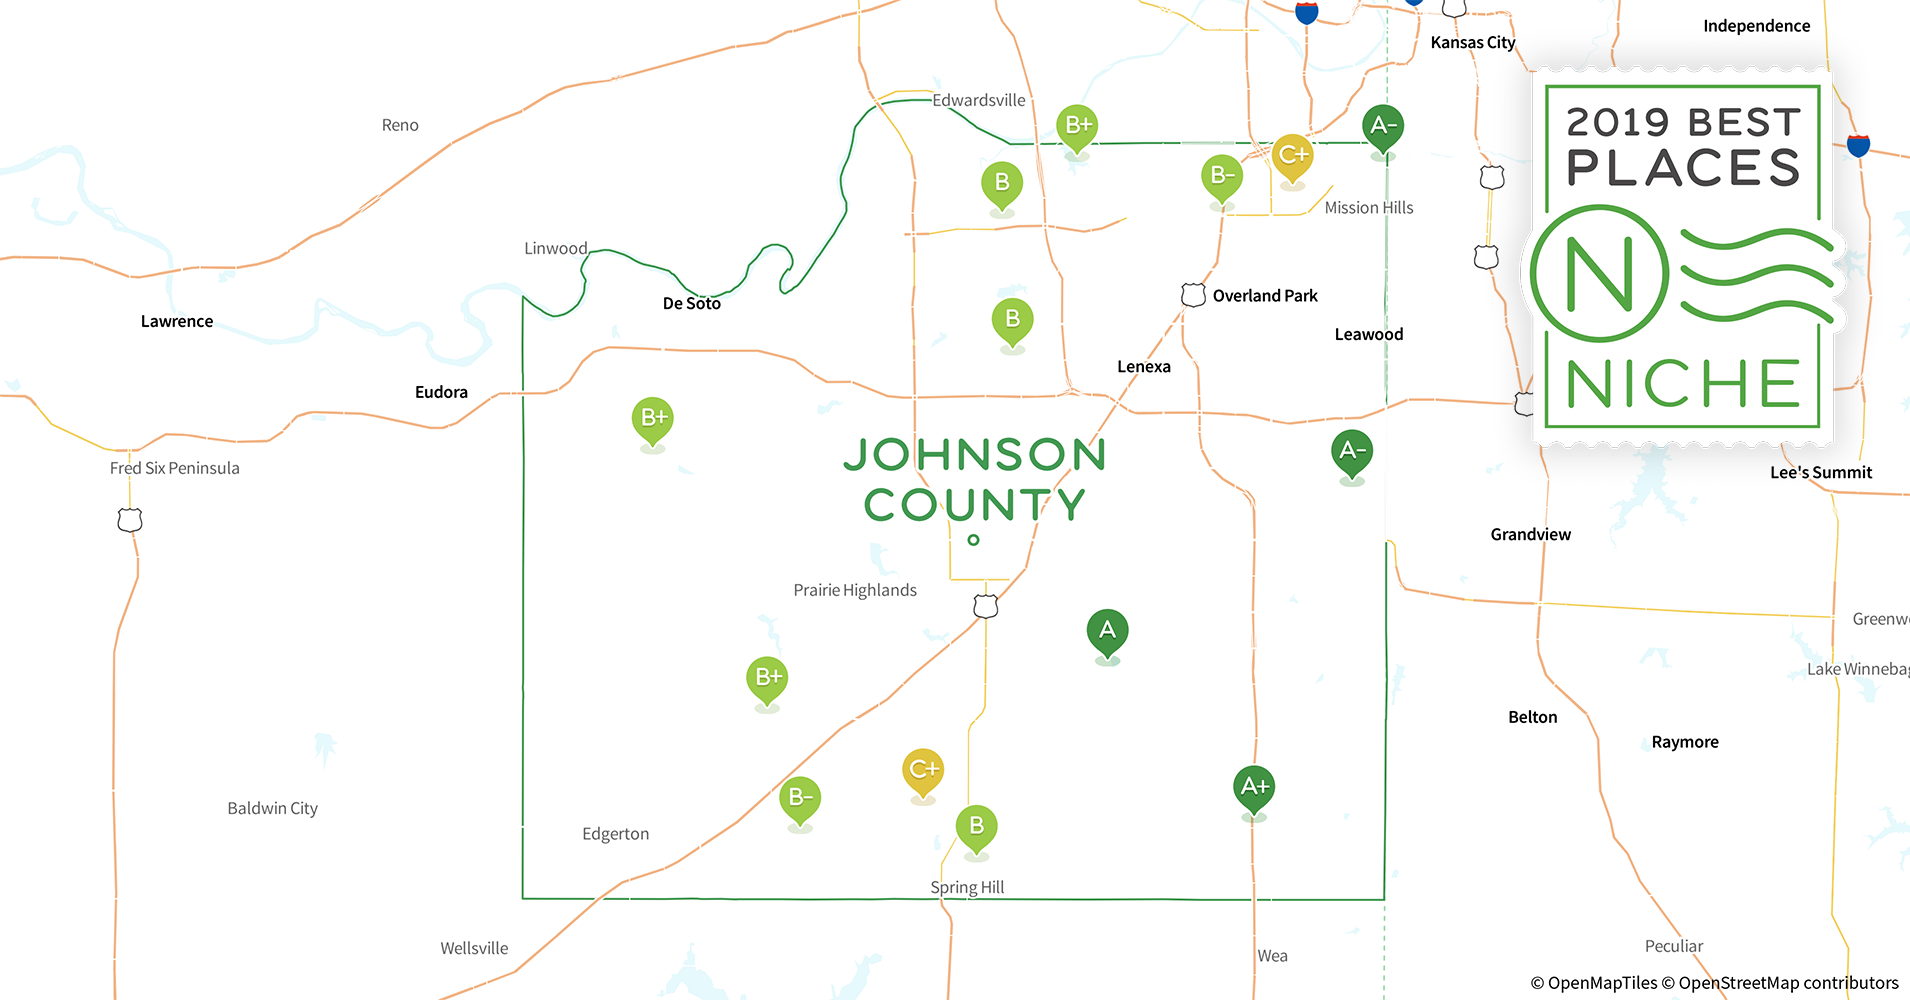 2019 Best Places to Live in Johnson County, KS - Niche